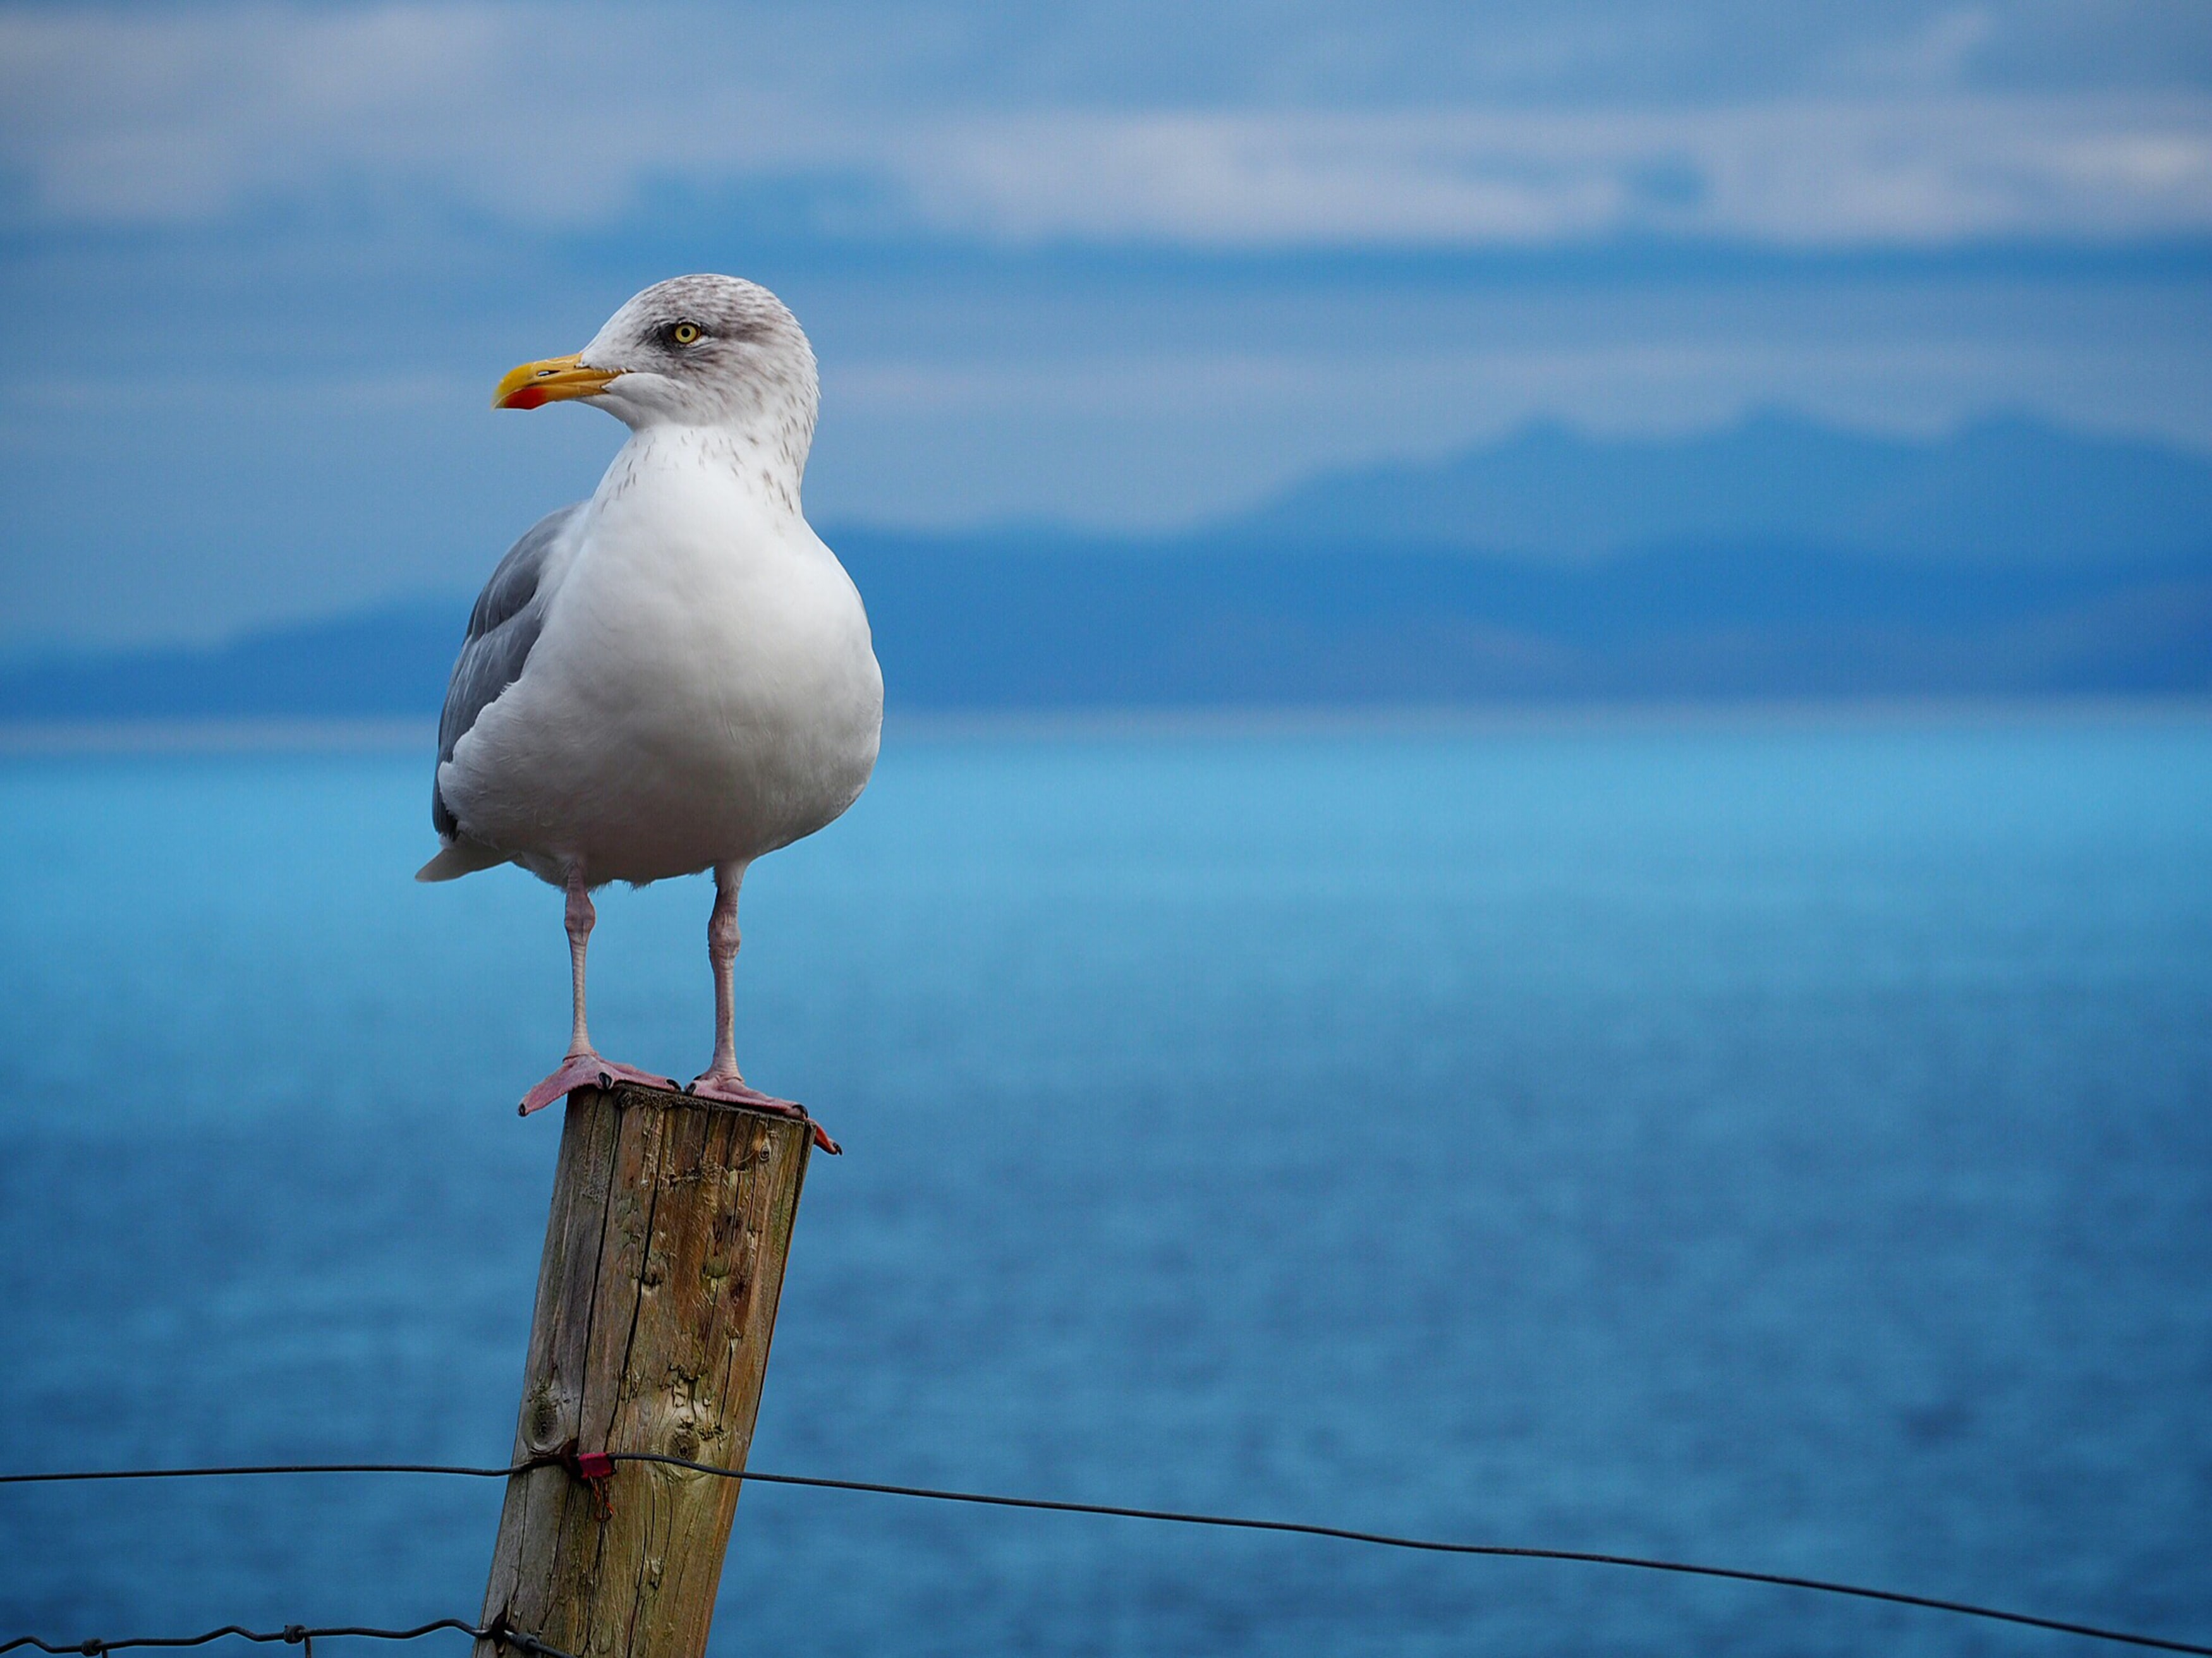 white bird standing on brown pole